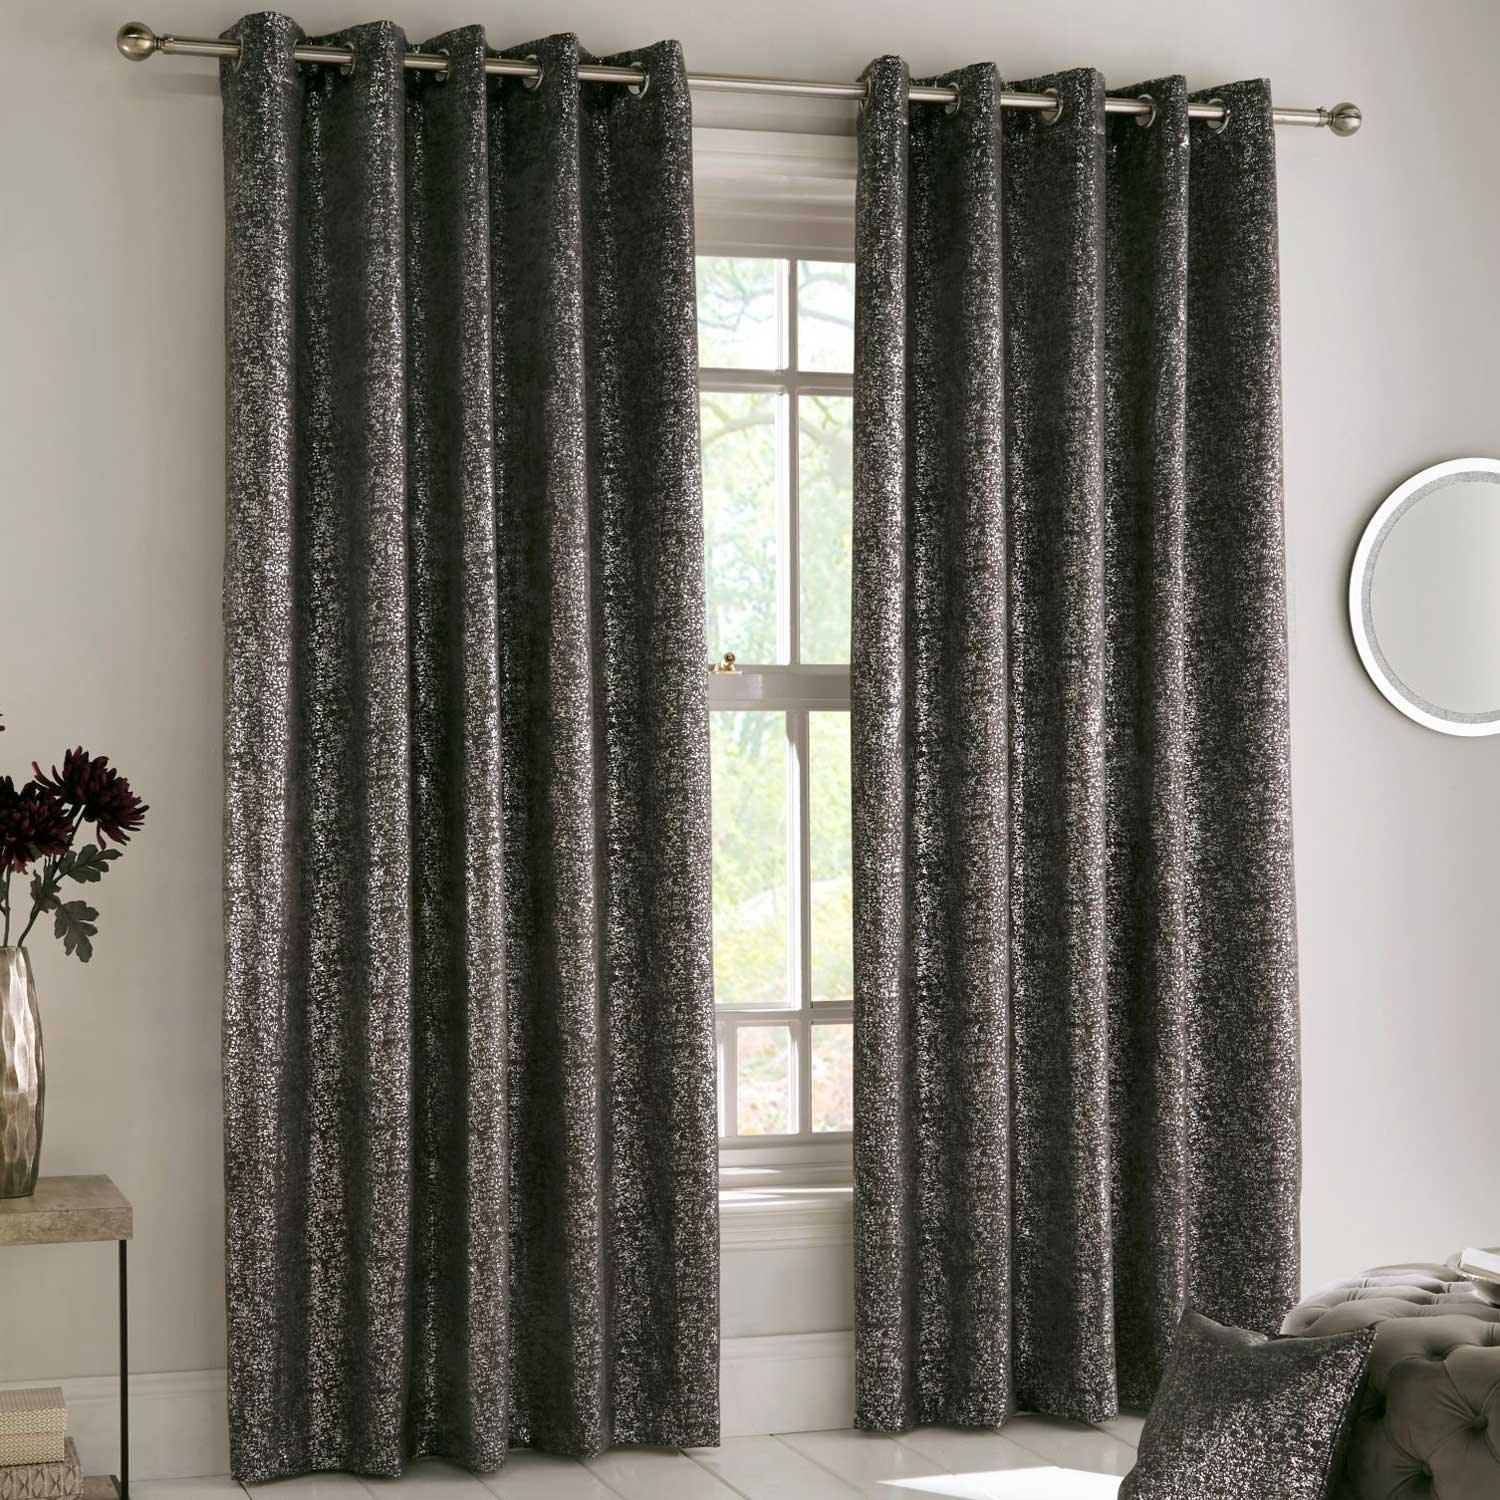 Halo Sparkle Block-Out Thermal Eyelet Curtains Charcoal - 46'' x 54'' - Ideal Textiles